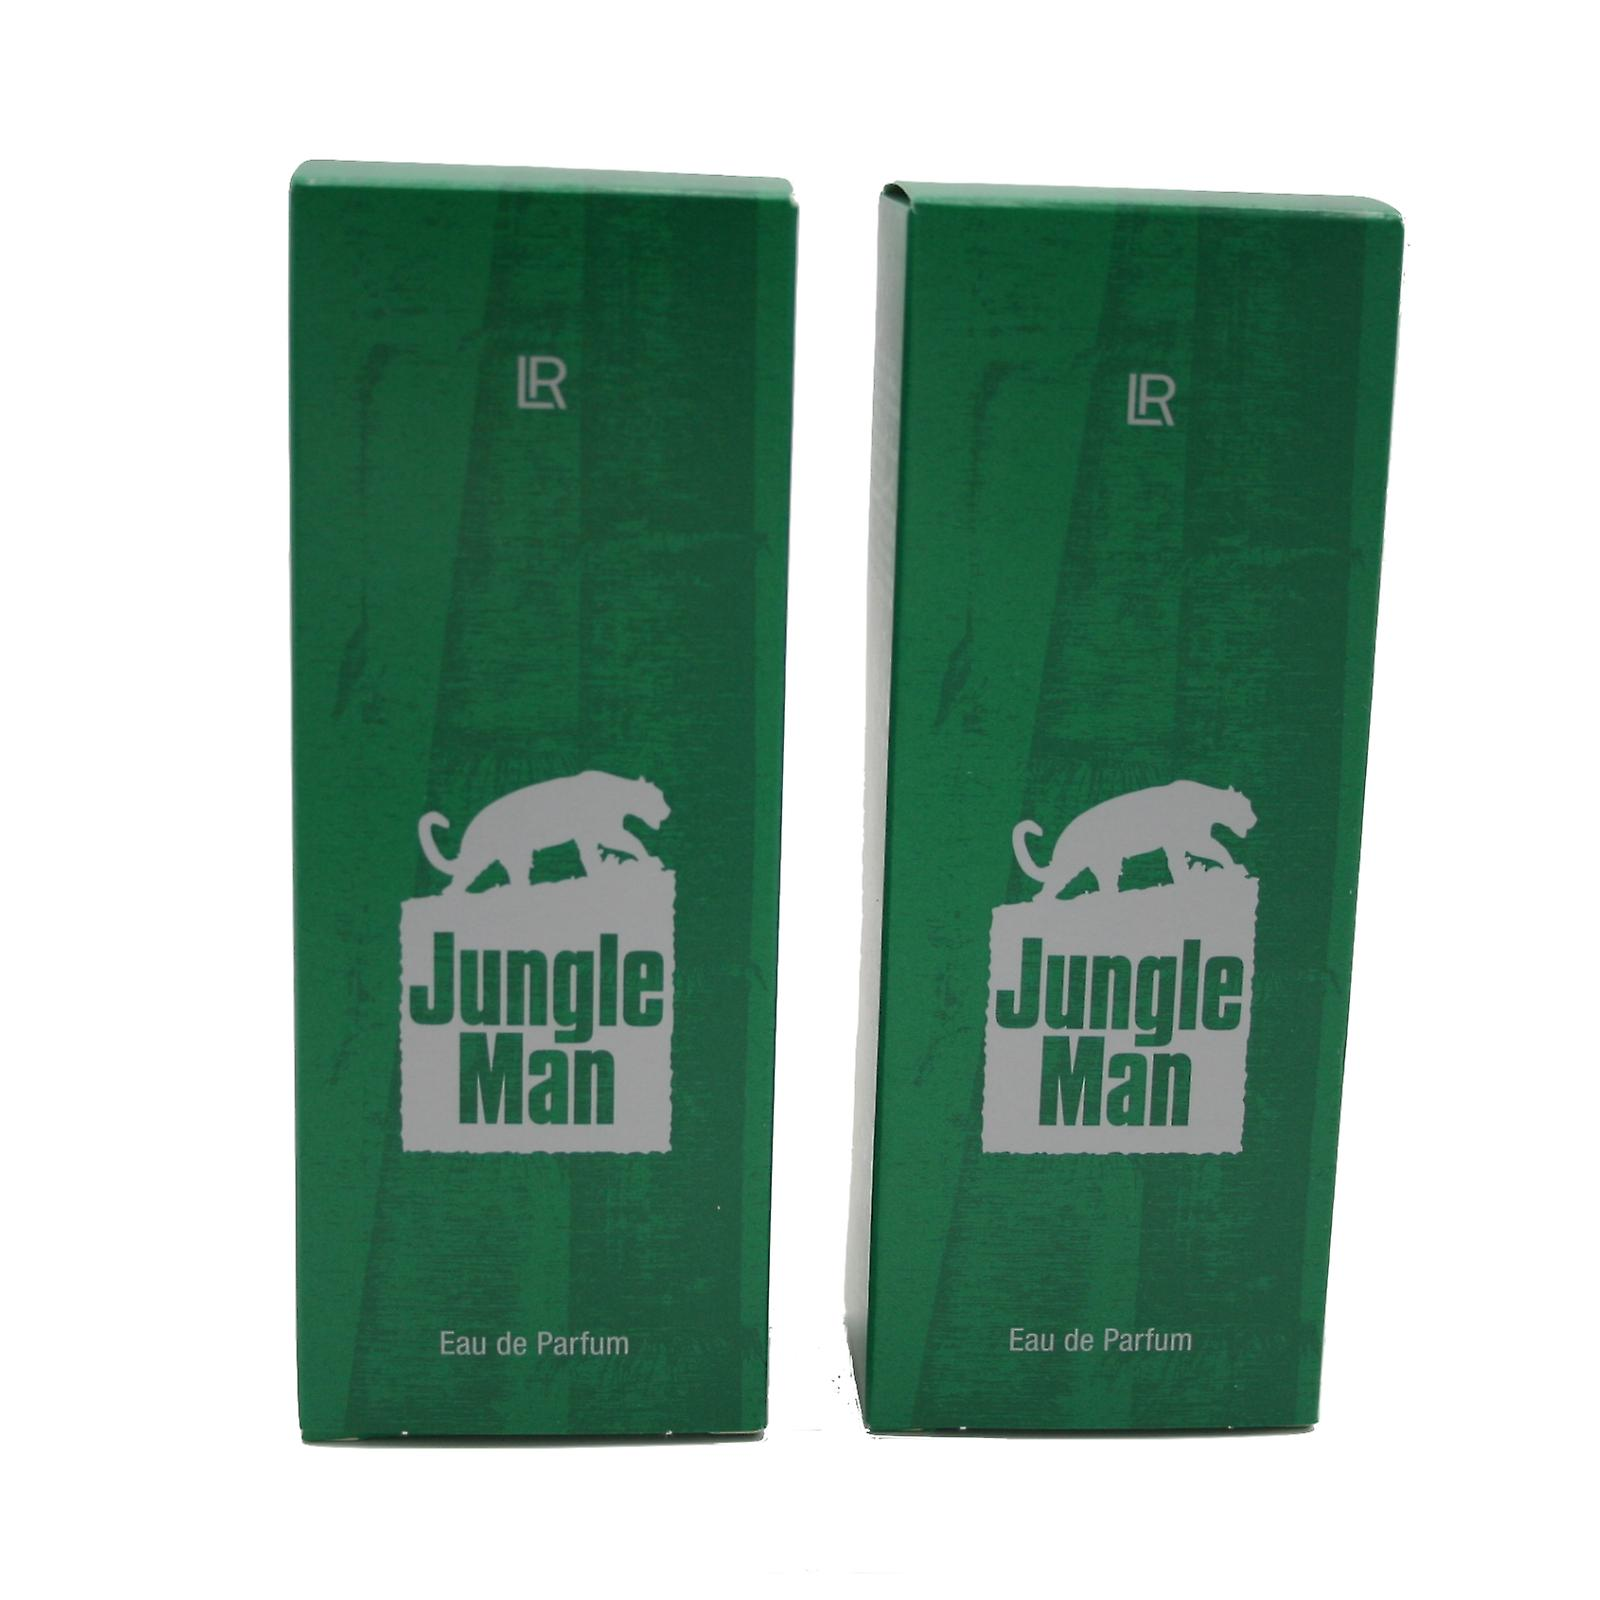 Due bottiglie di LR Jungle Man Eau de Parfum